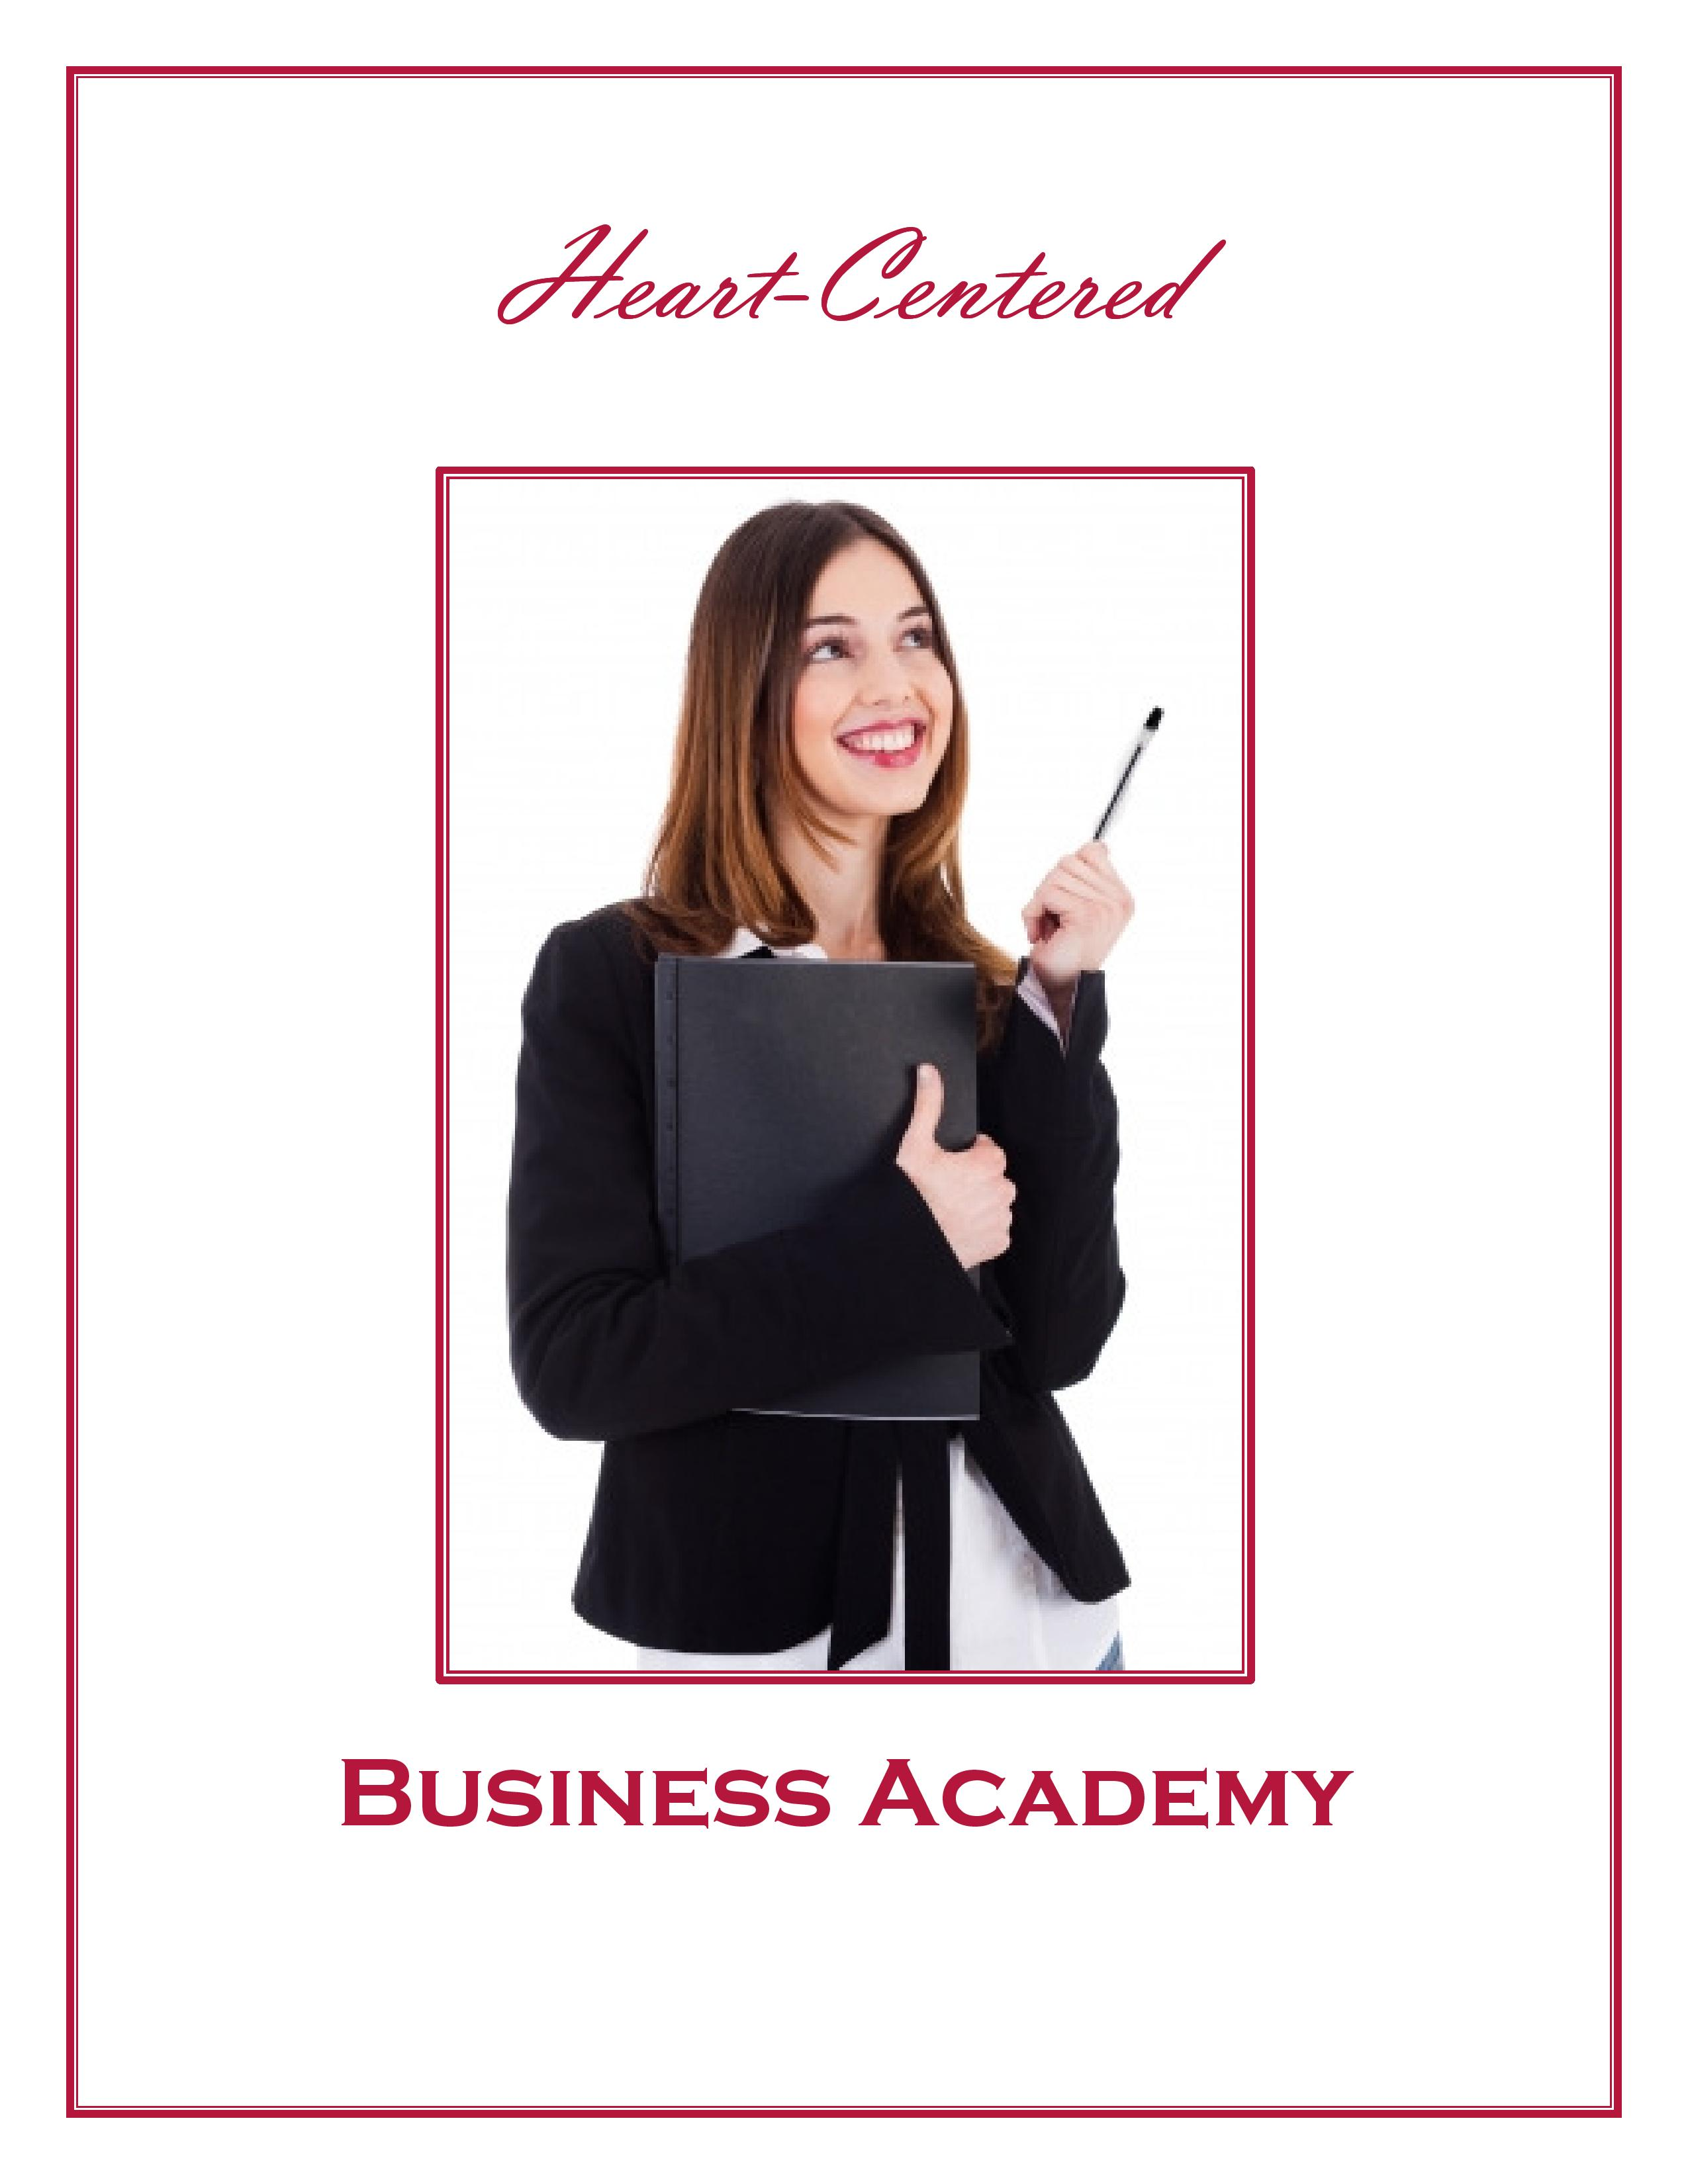 Heart-Centered Business Academy